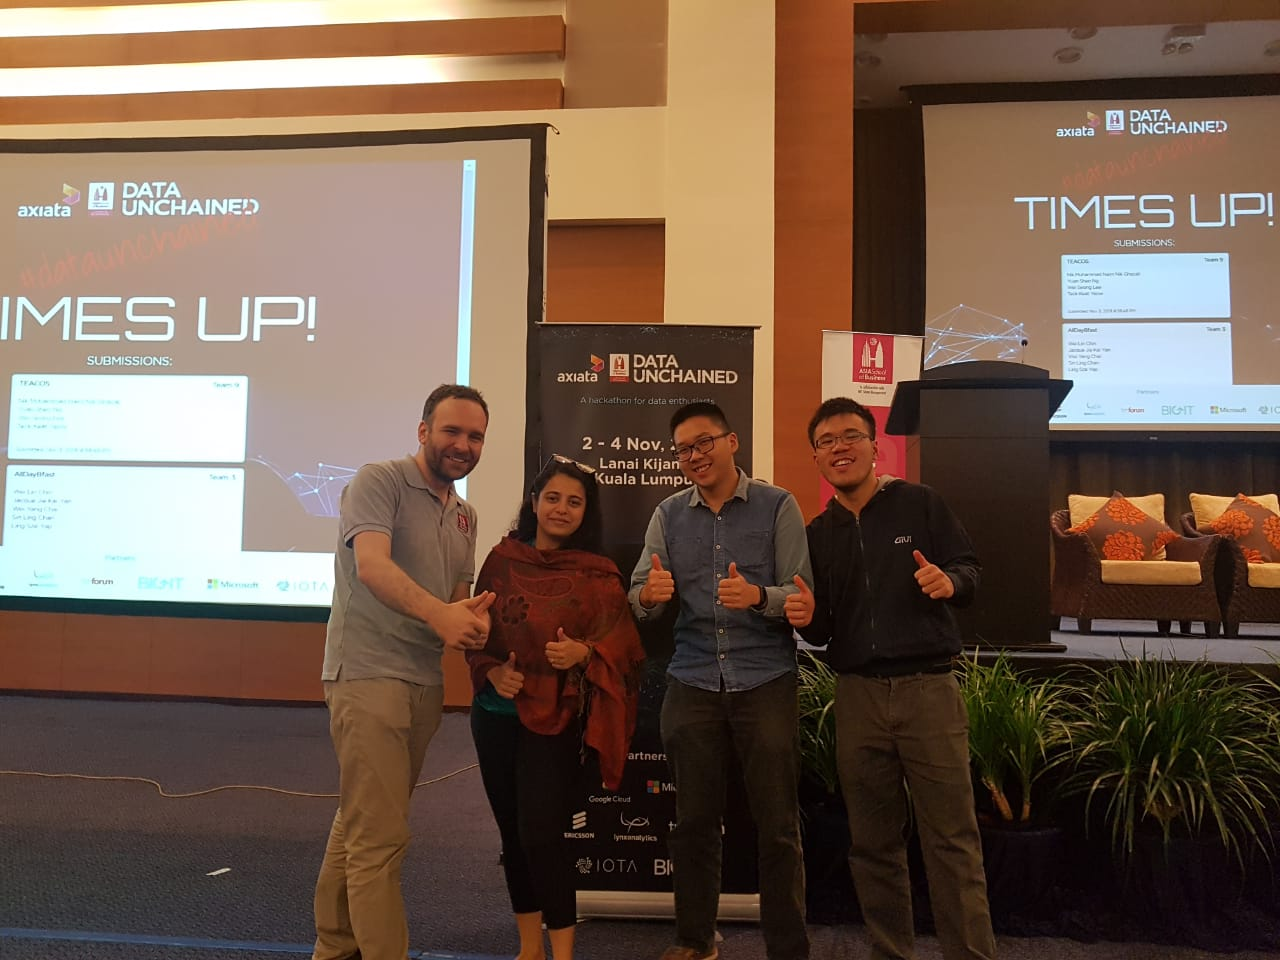 From What I Did: Takeaways from My First Datathon with Data Unchained 2018 by Axiata